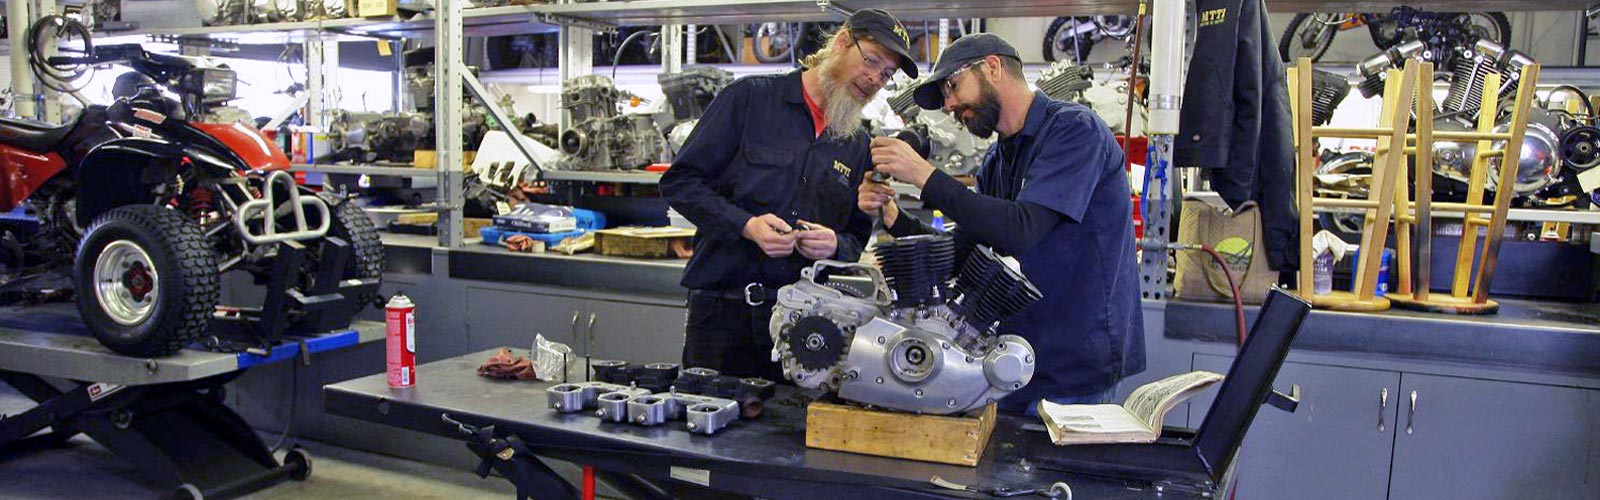 Instructor and student working on engine in MTTI's motorcycle tech shop.